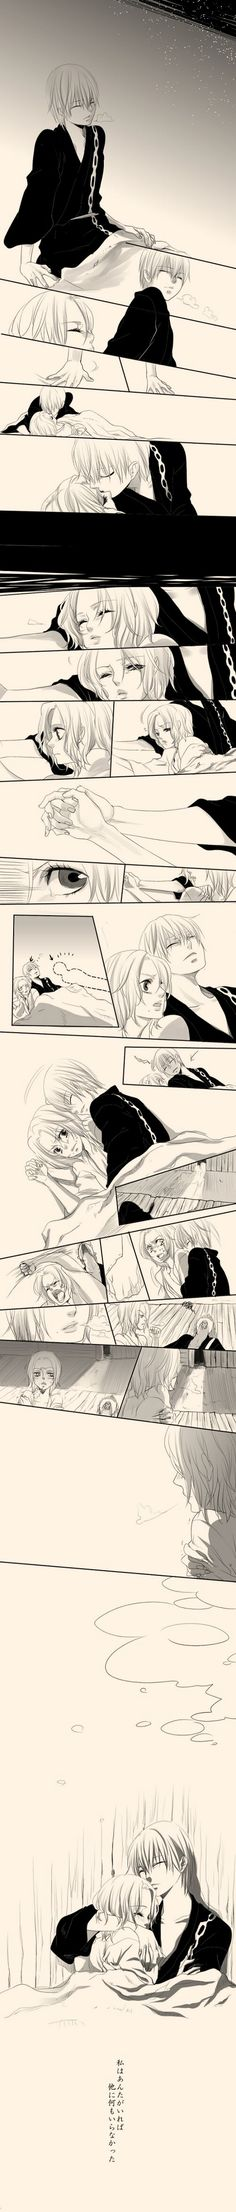 Young Gin and Rangiku - Bleach ---- awww this is so adorable ^^